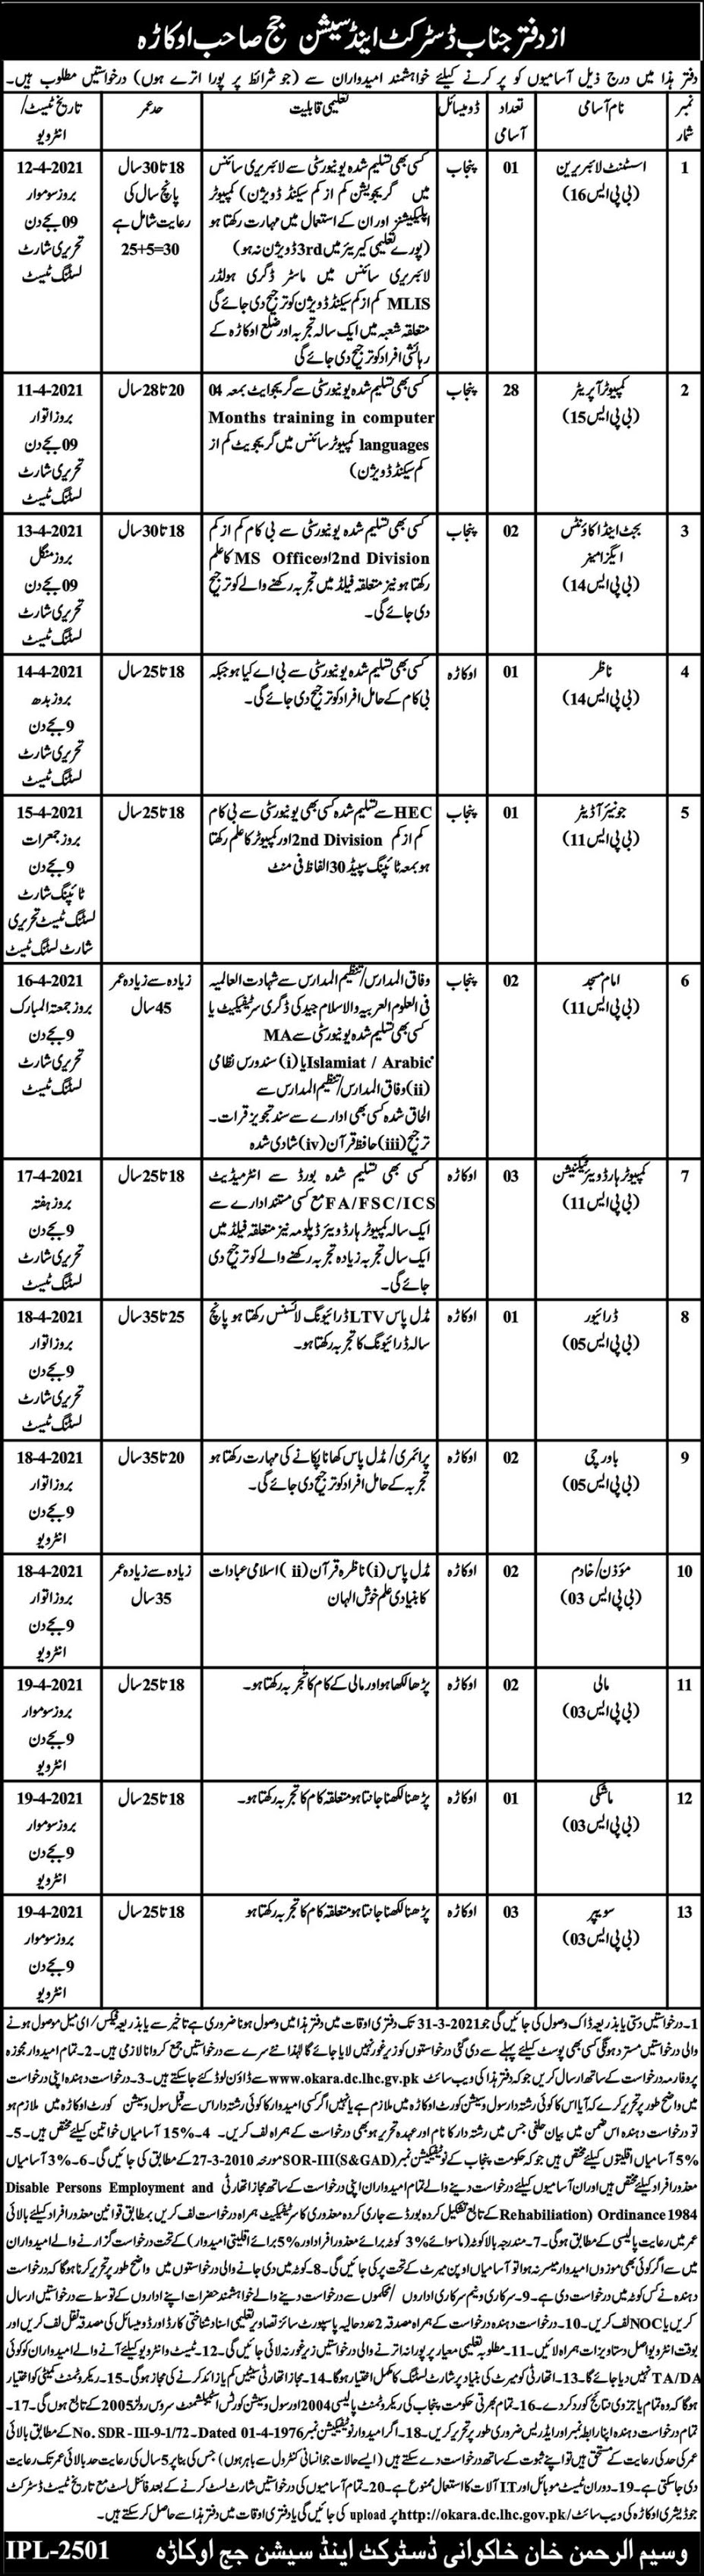 Latest Jobs in Session Court 2021 - District & Session Court Okara Jobs 2021 - Session Court Recruitment - Session Court Vacancies - Job Application Form District Courts Okara 2021